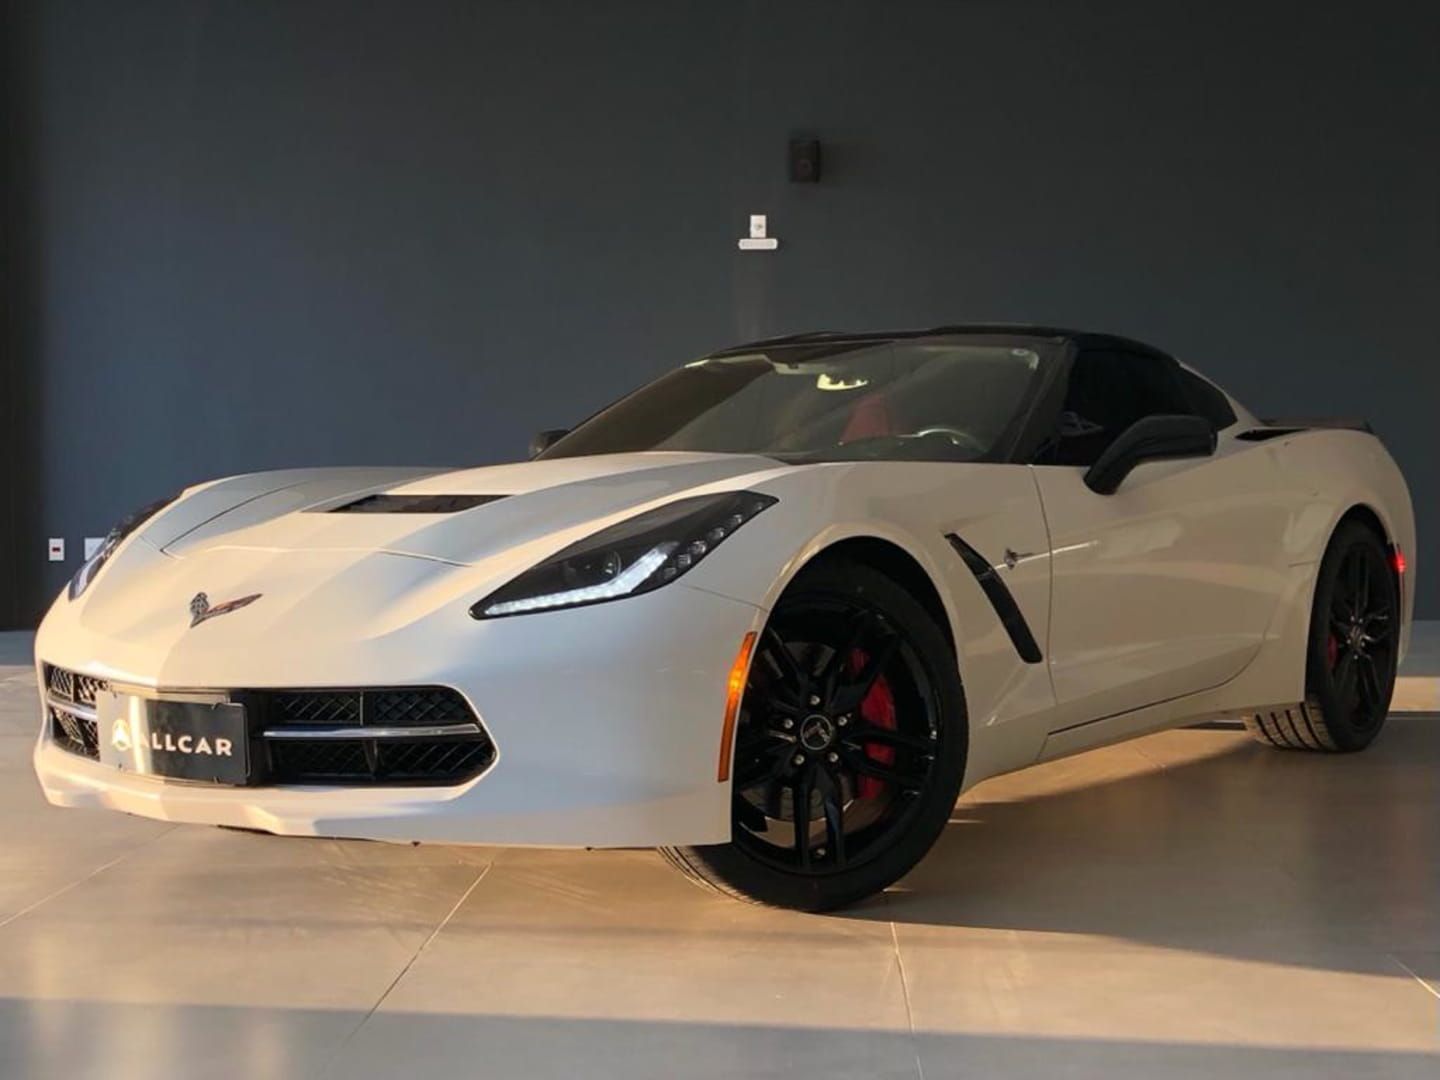 CHEVROLET CORVETTE STINGRAY 6.2 V8 2P